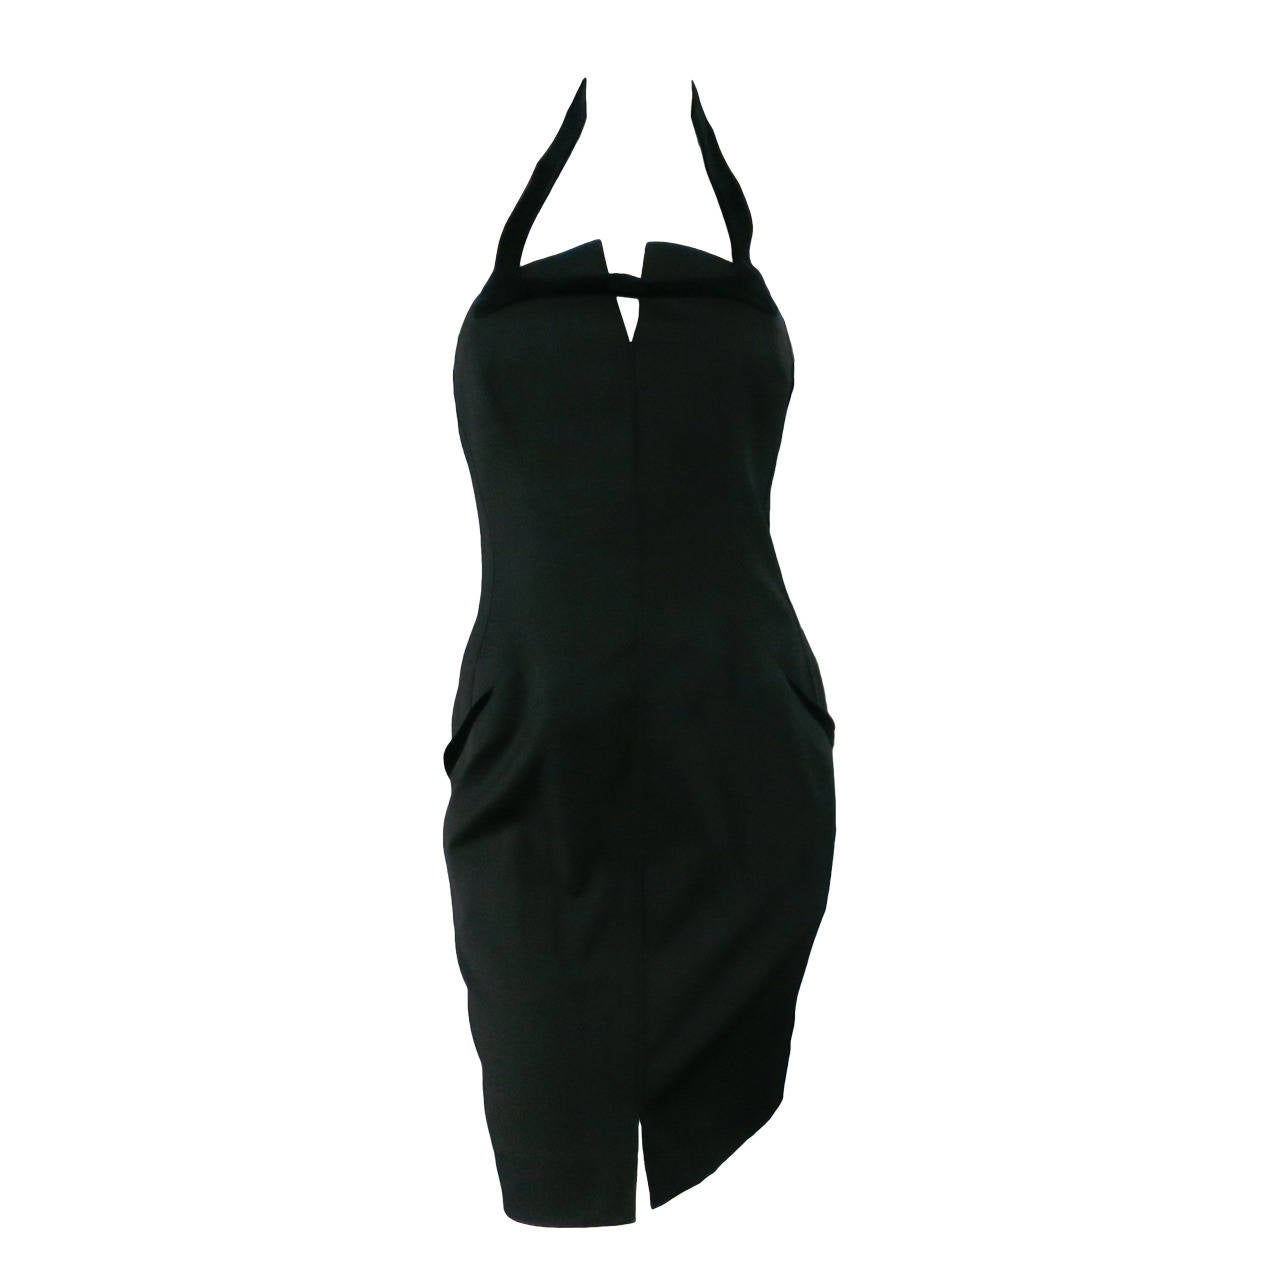 THIERRY MUGLER Size 6 Black Cotton/Wool Cocktail Dress 1